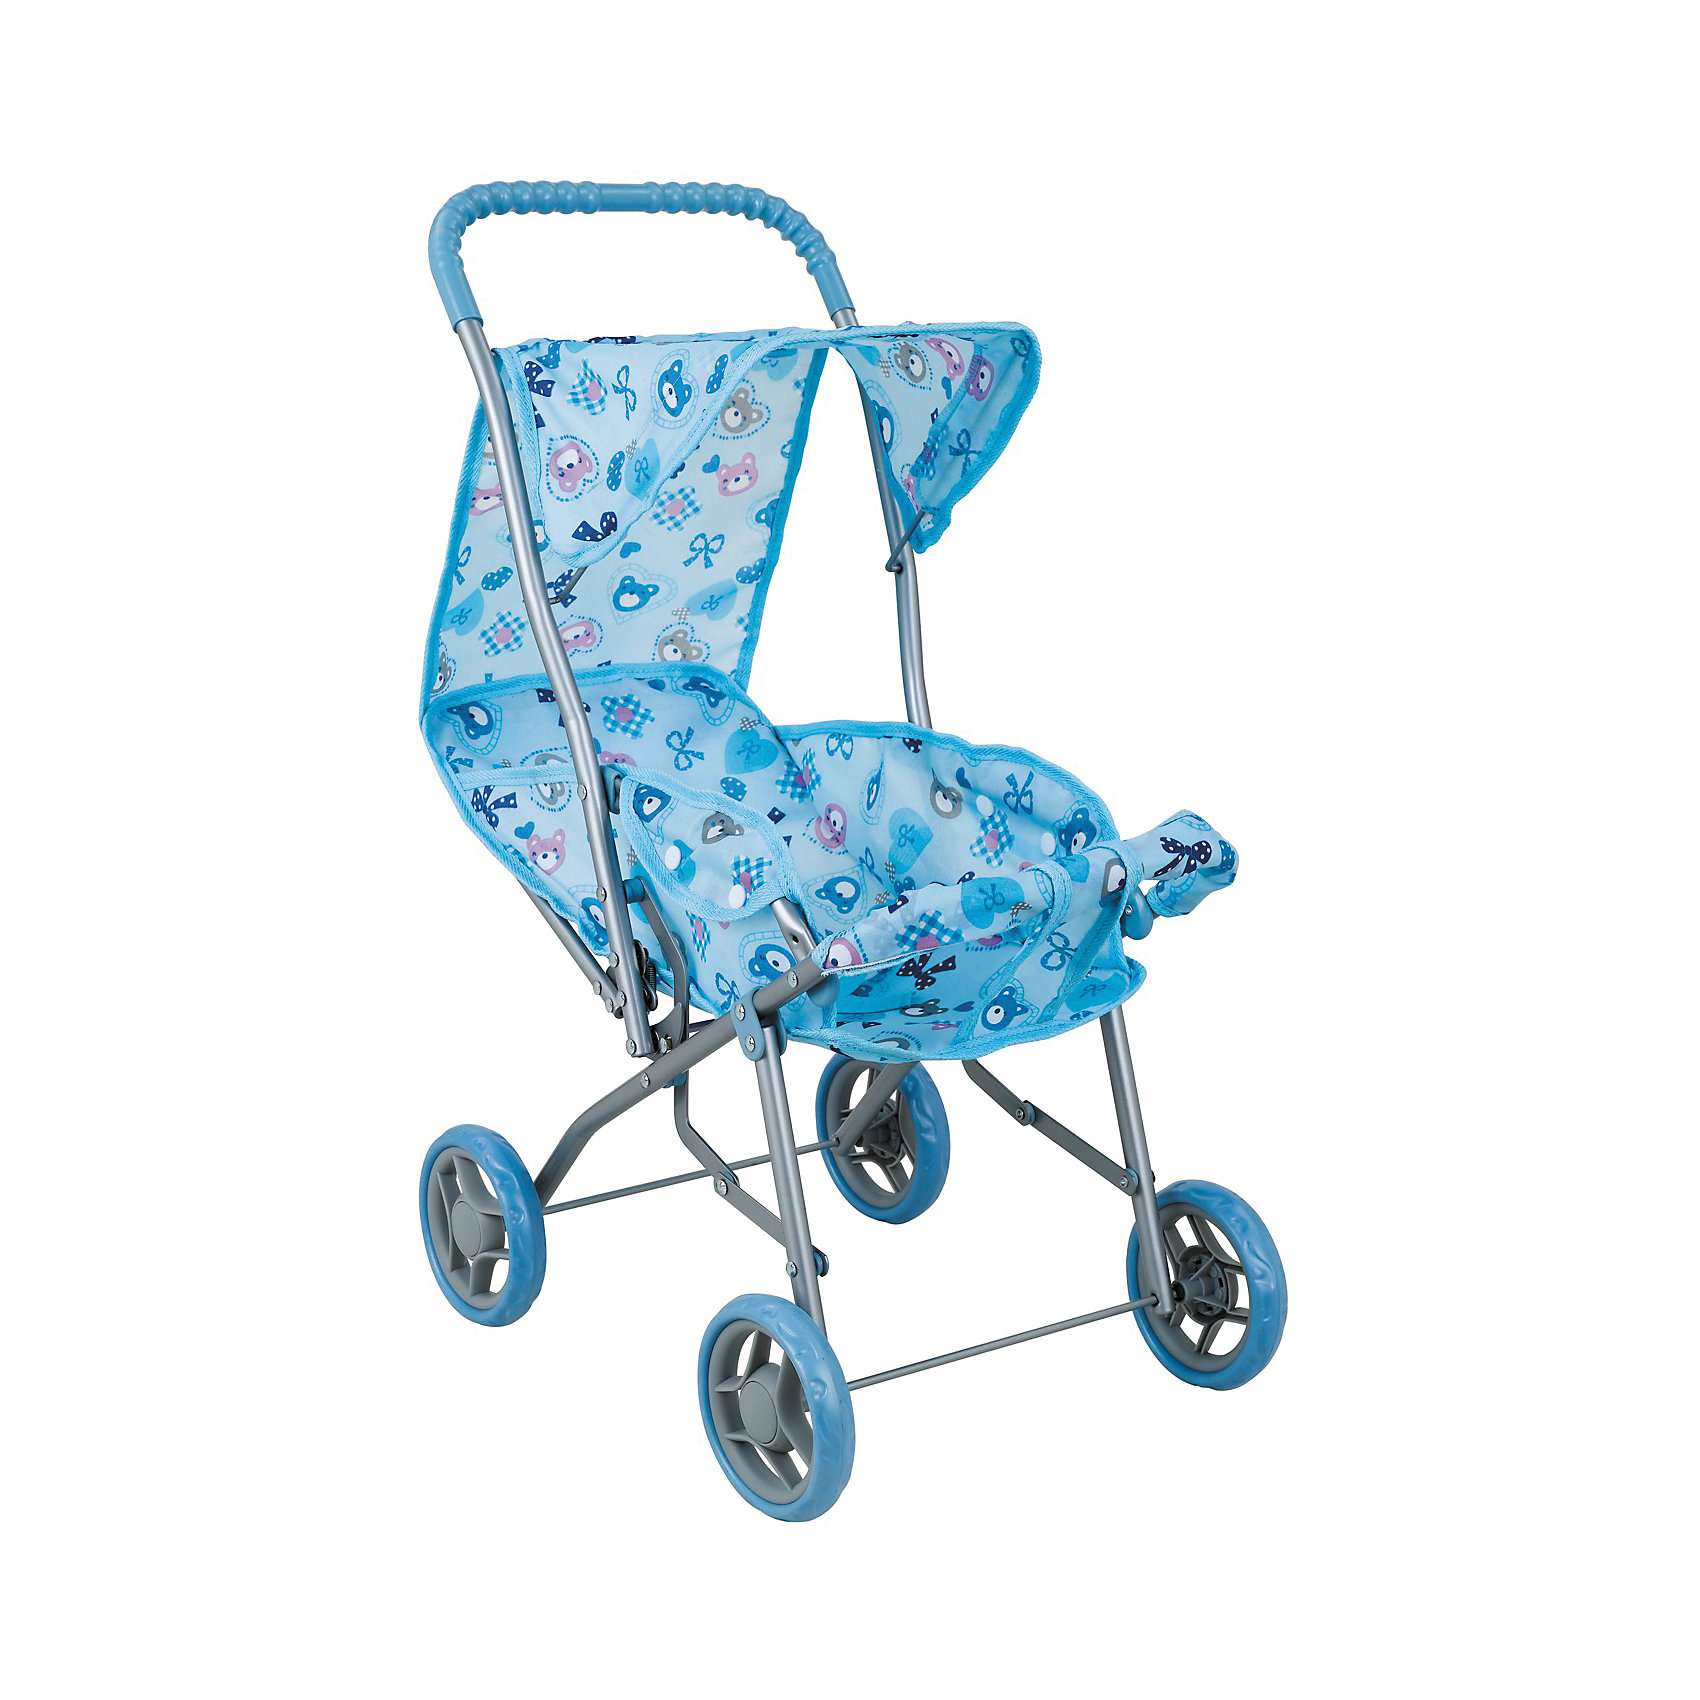 ������� - ������ ��� ����� Buggy Boom Mixy, � ���������, Melobo,  � ������������